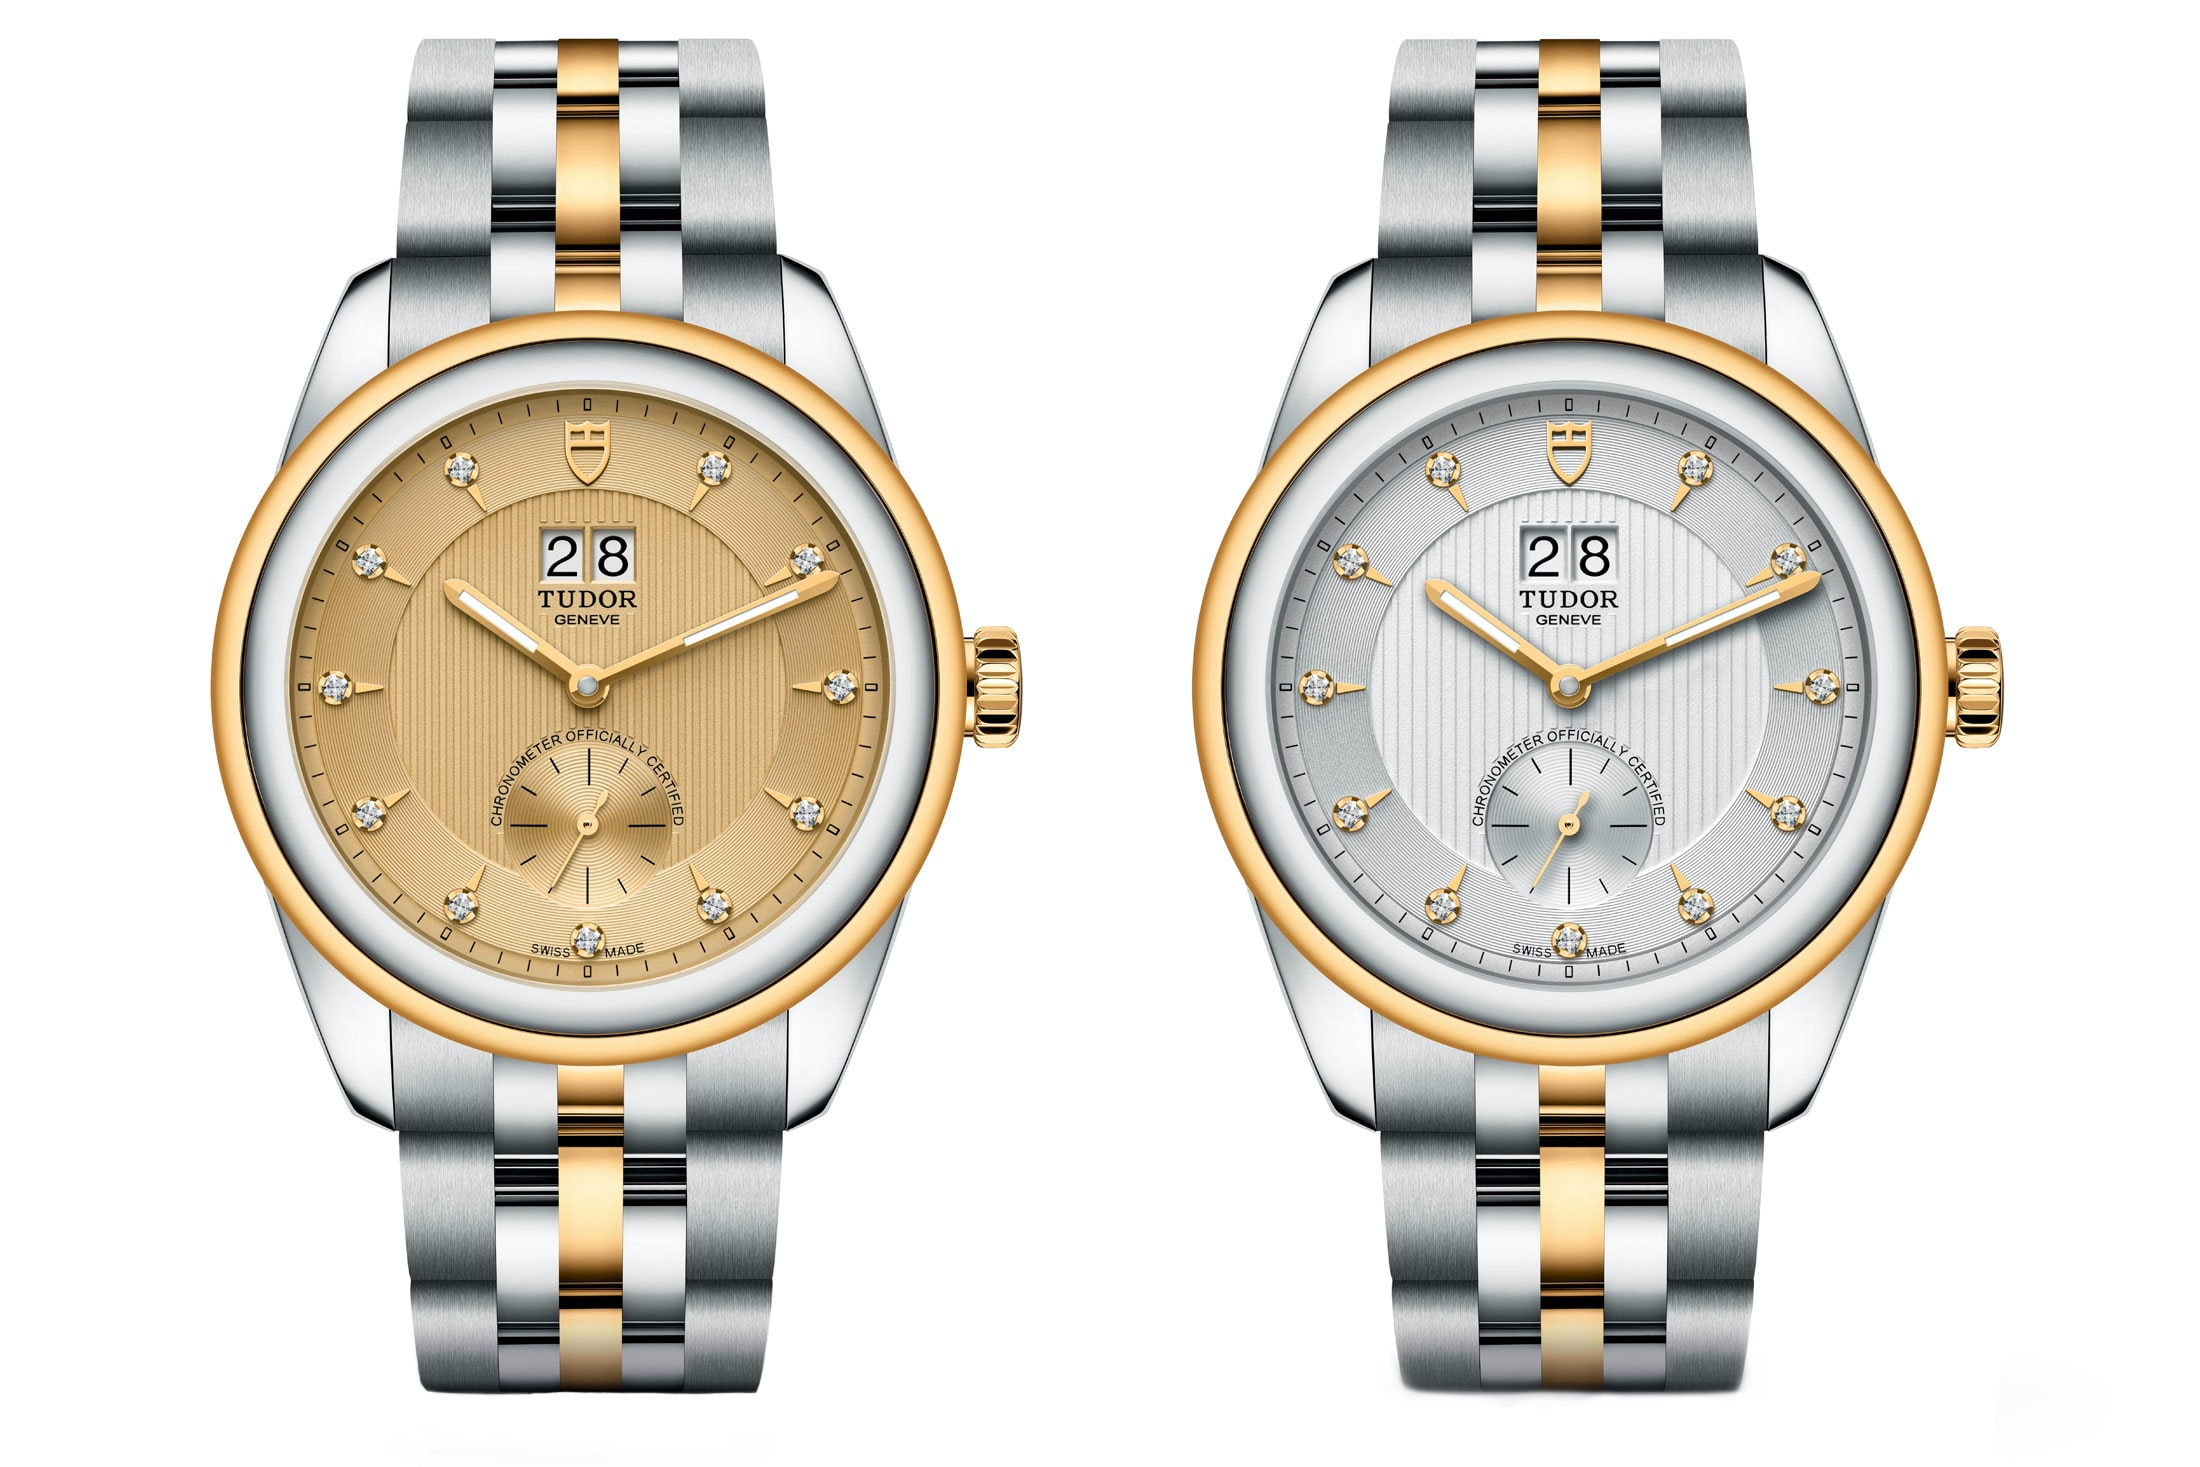 Introducing: The New Tudor Glamour Double Date tudor 02